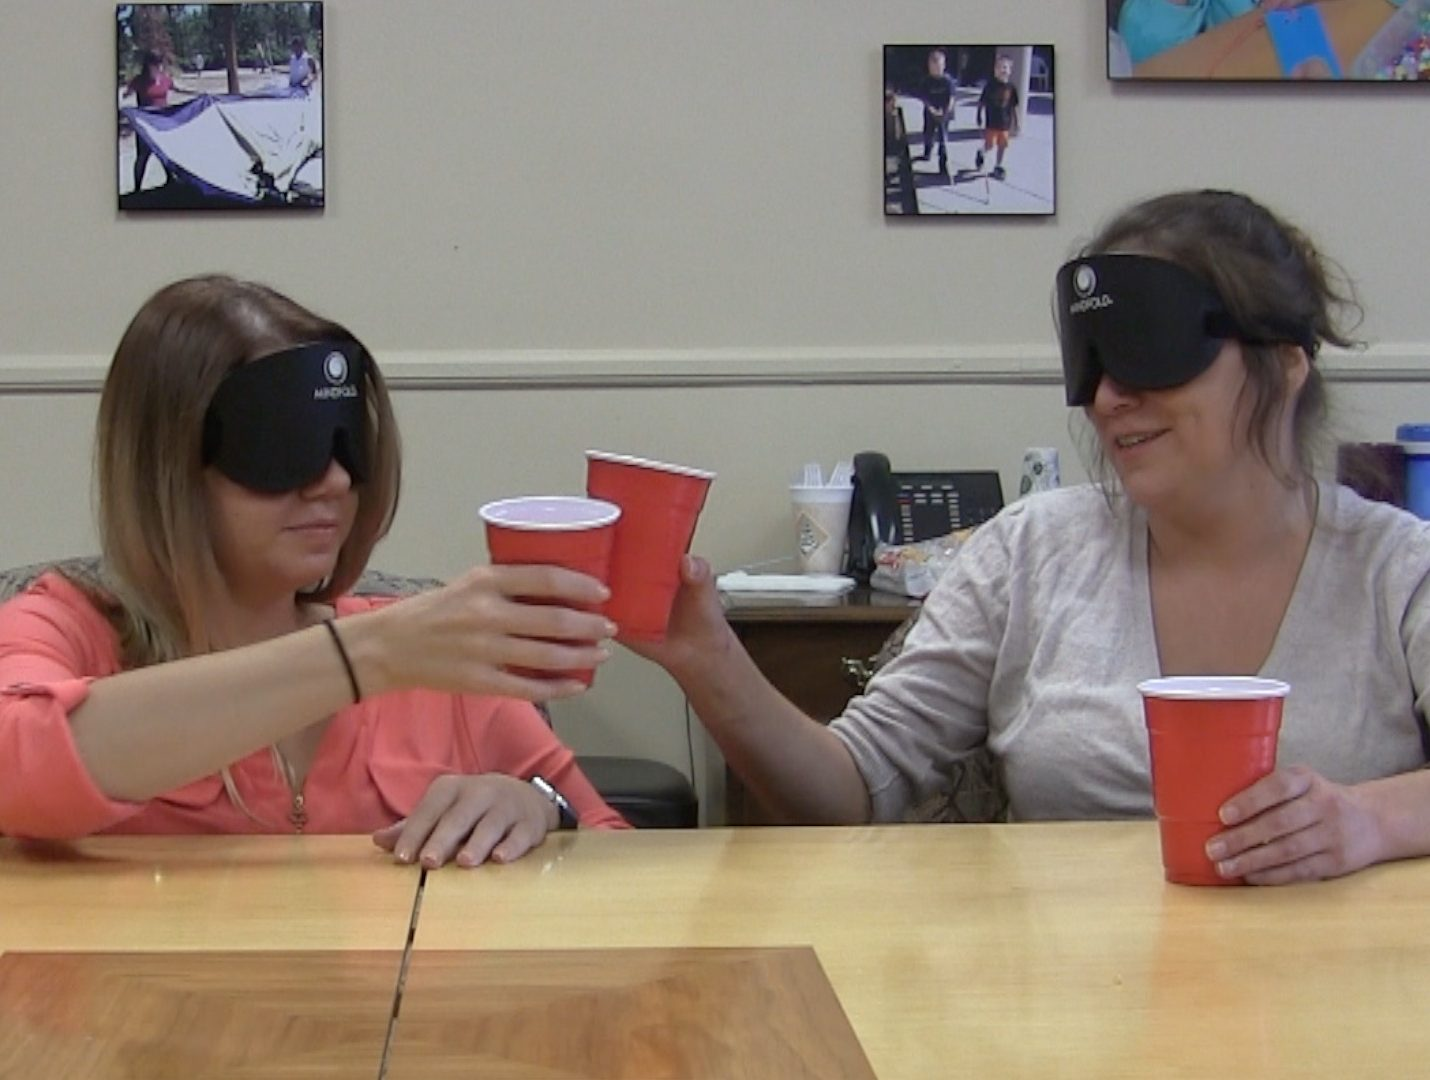 Two women touch glasses